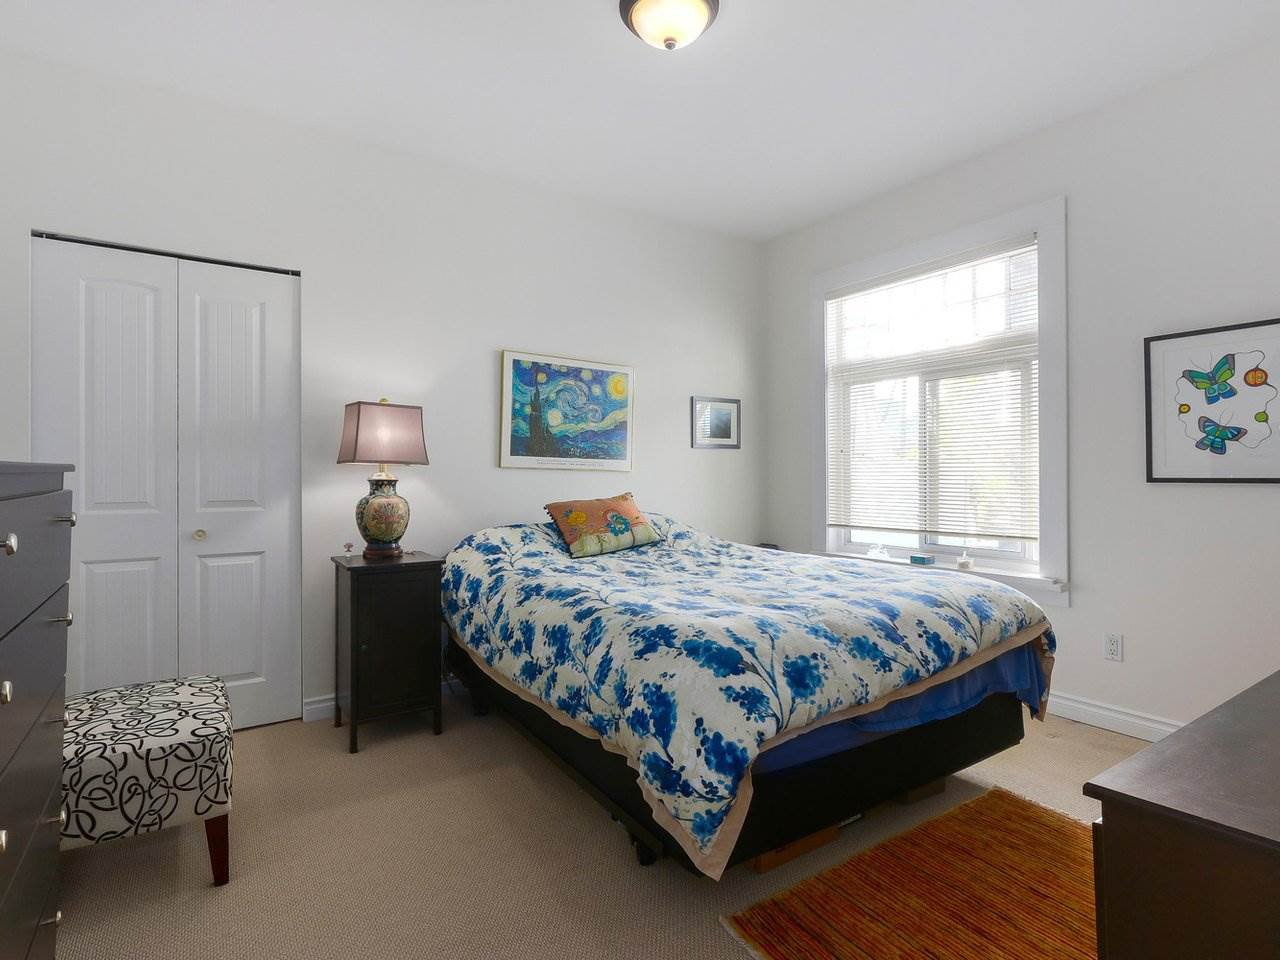 """Photo 6: Photos: 2610 W 10TH Avenue in Vancouver: Kitsilano House for sale in """"Kitsilano"""" (Vancouver West)  : MLS®# R2471992"""